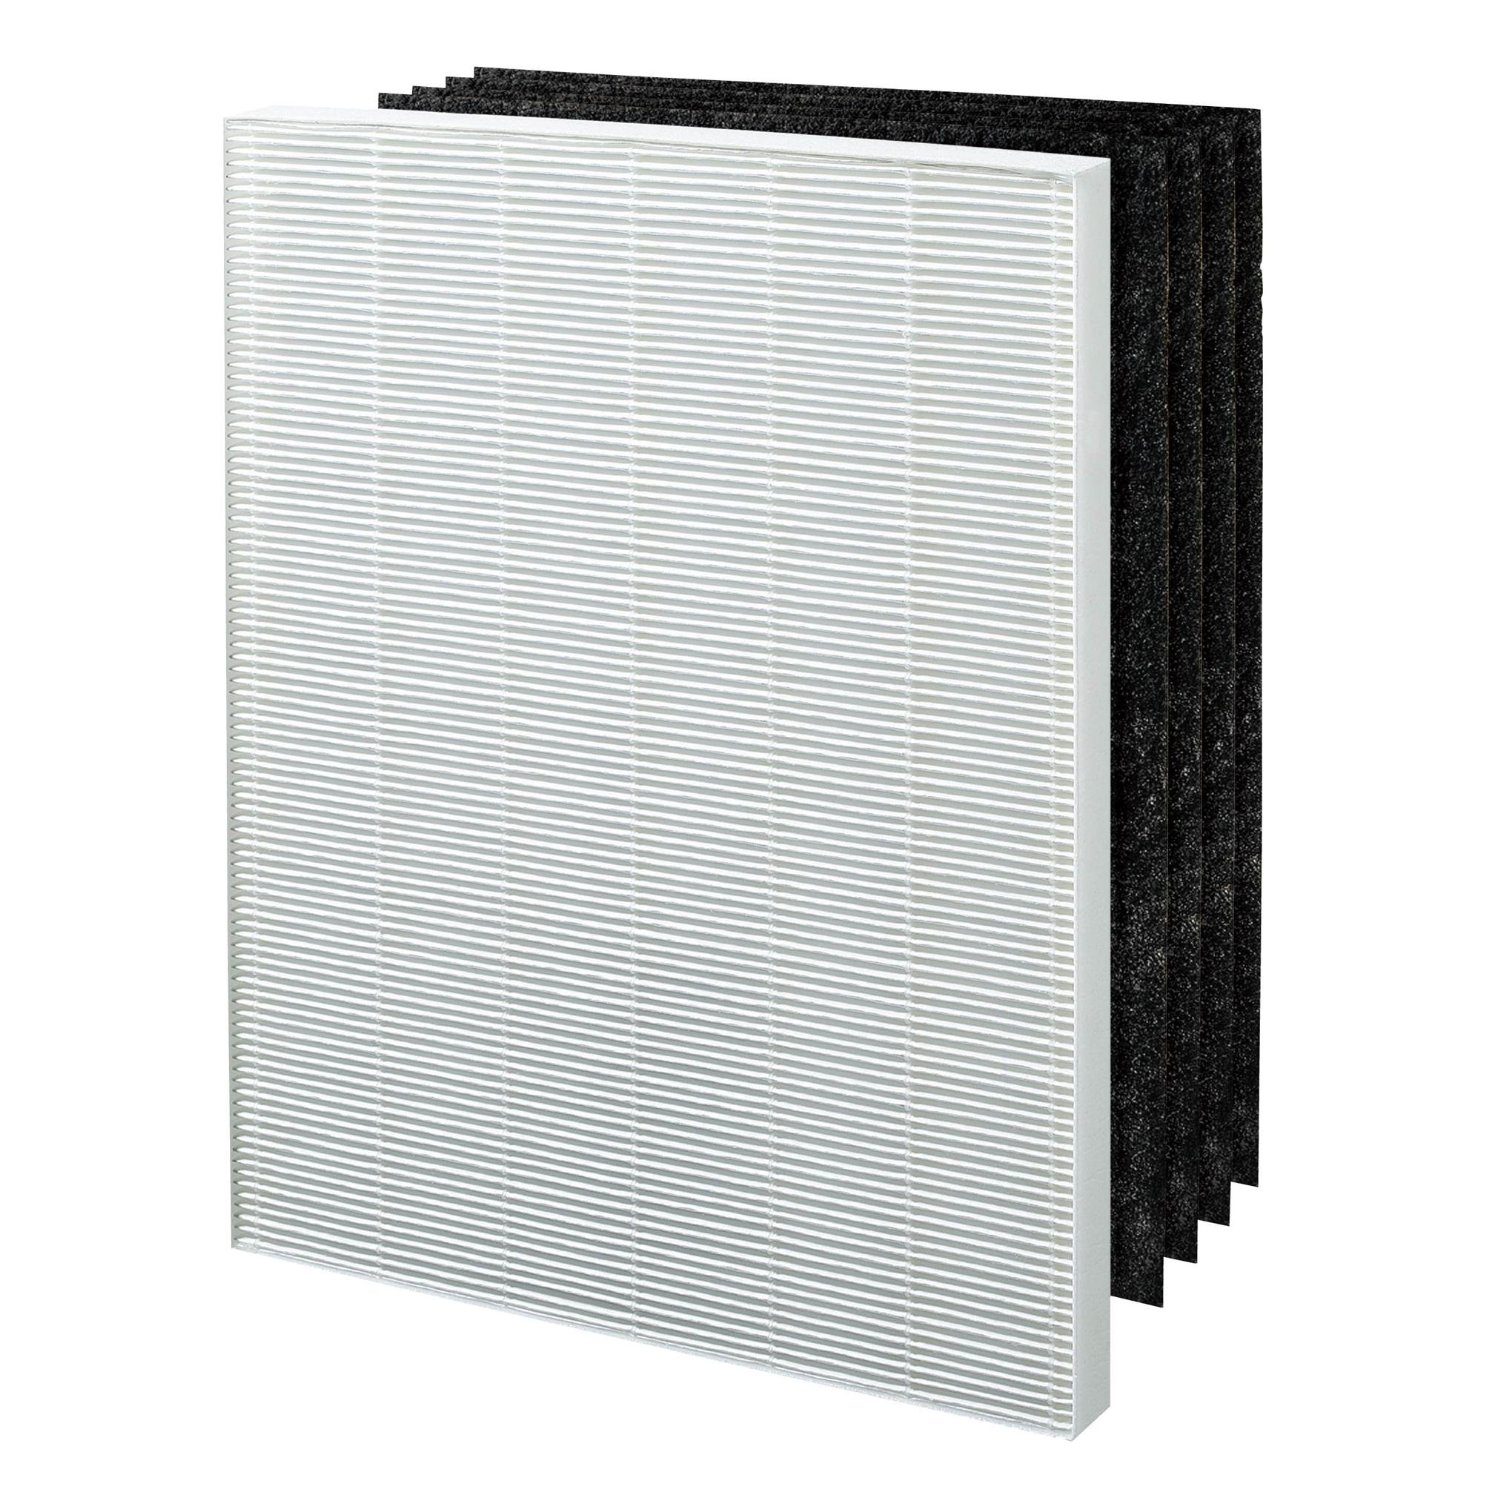 winix-air-purifier-zero-n-filter-r